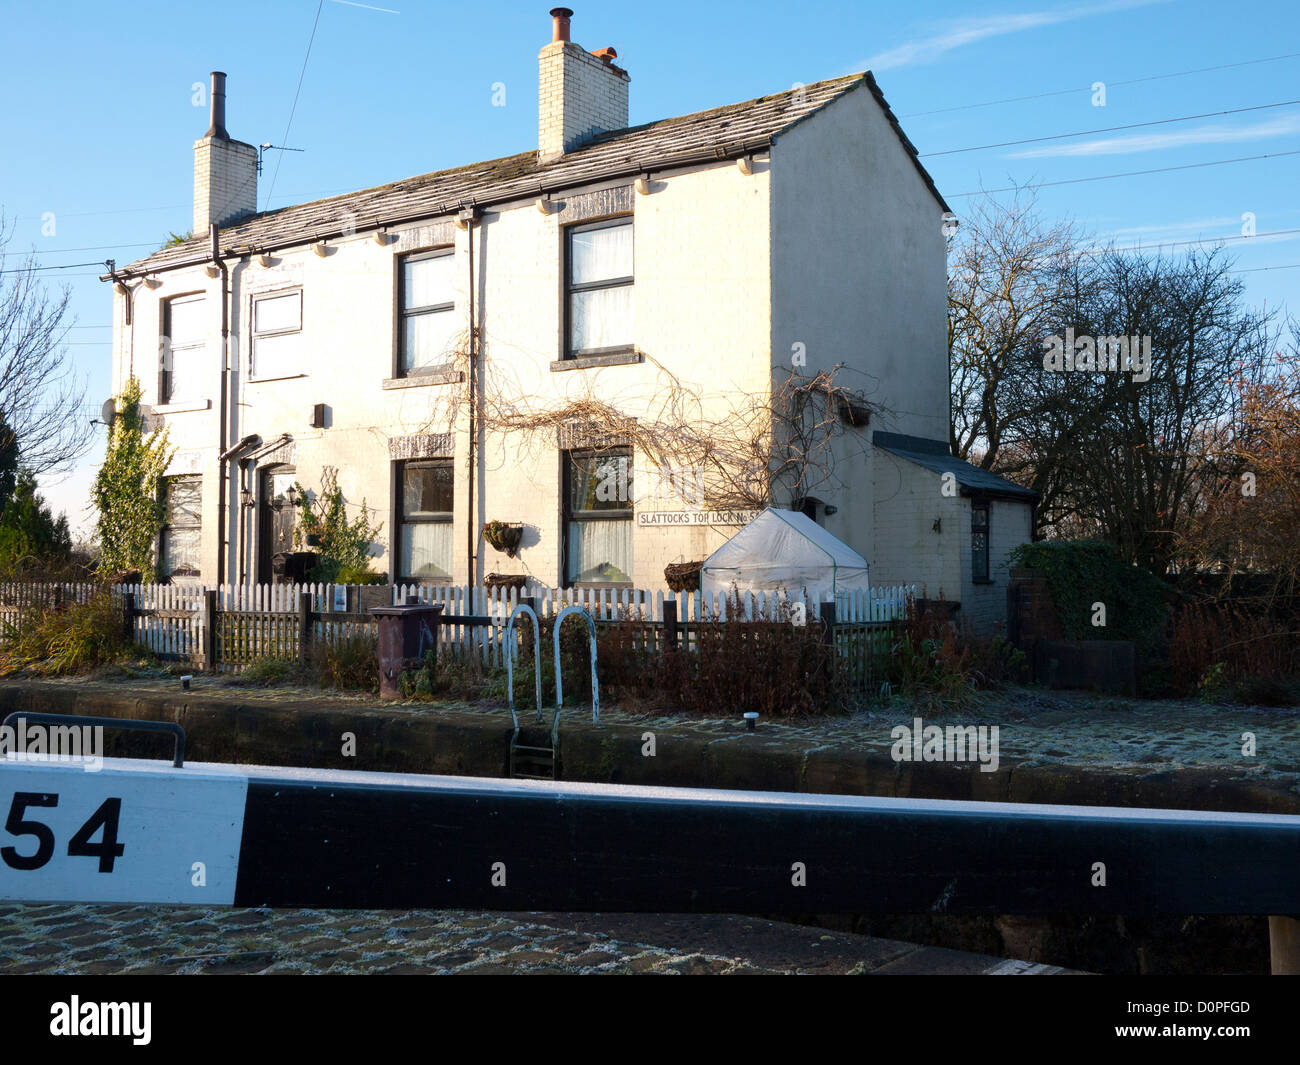 Lock Keeper Cottage, on the Rochdale canal at Slattocks, Middleton, Greater Manchester, UK. - Stock Image